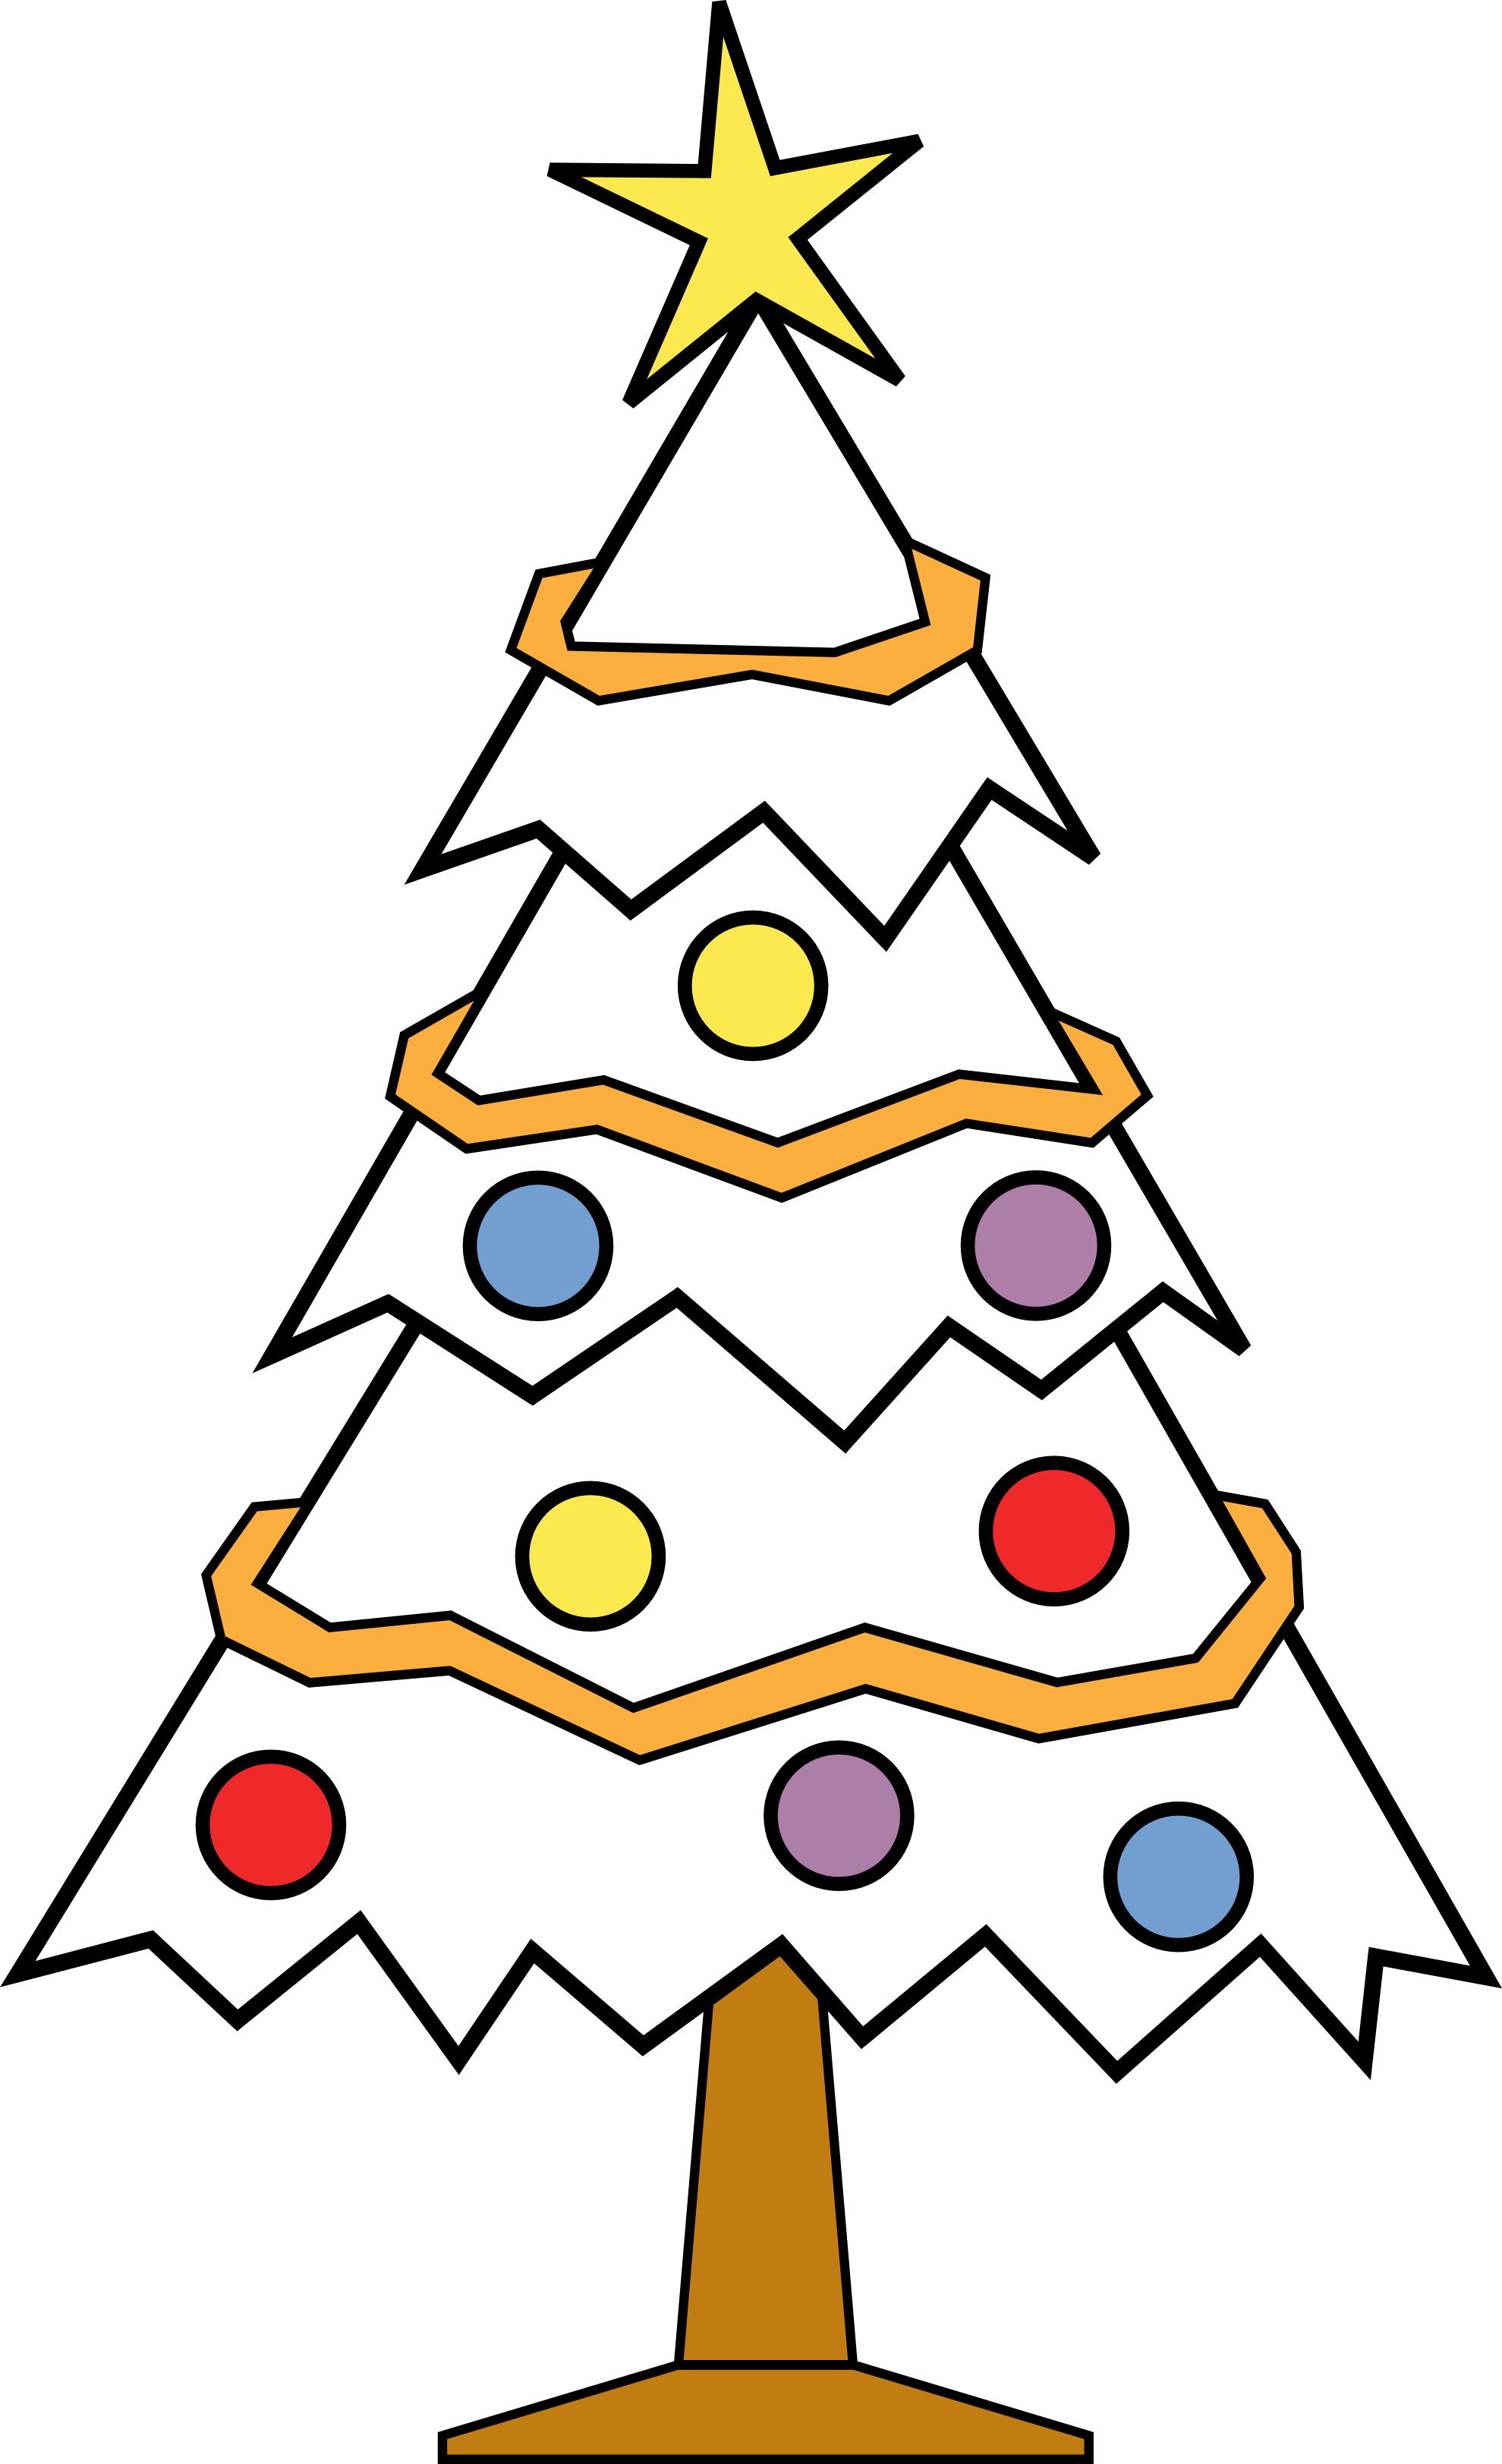 Couple clipart christmas. Free tree line drawing